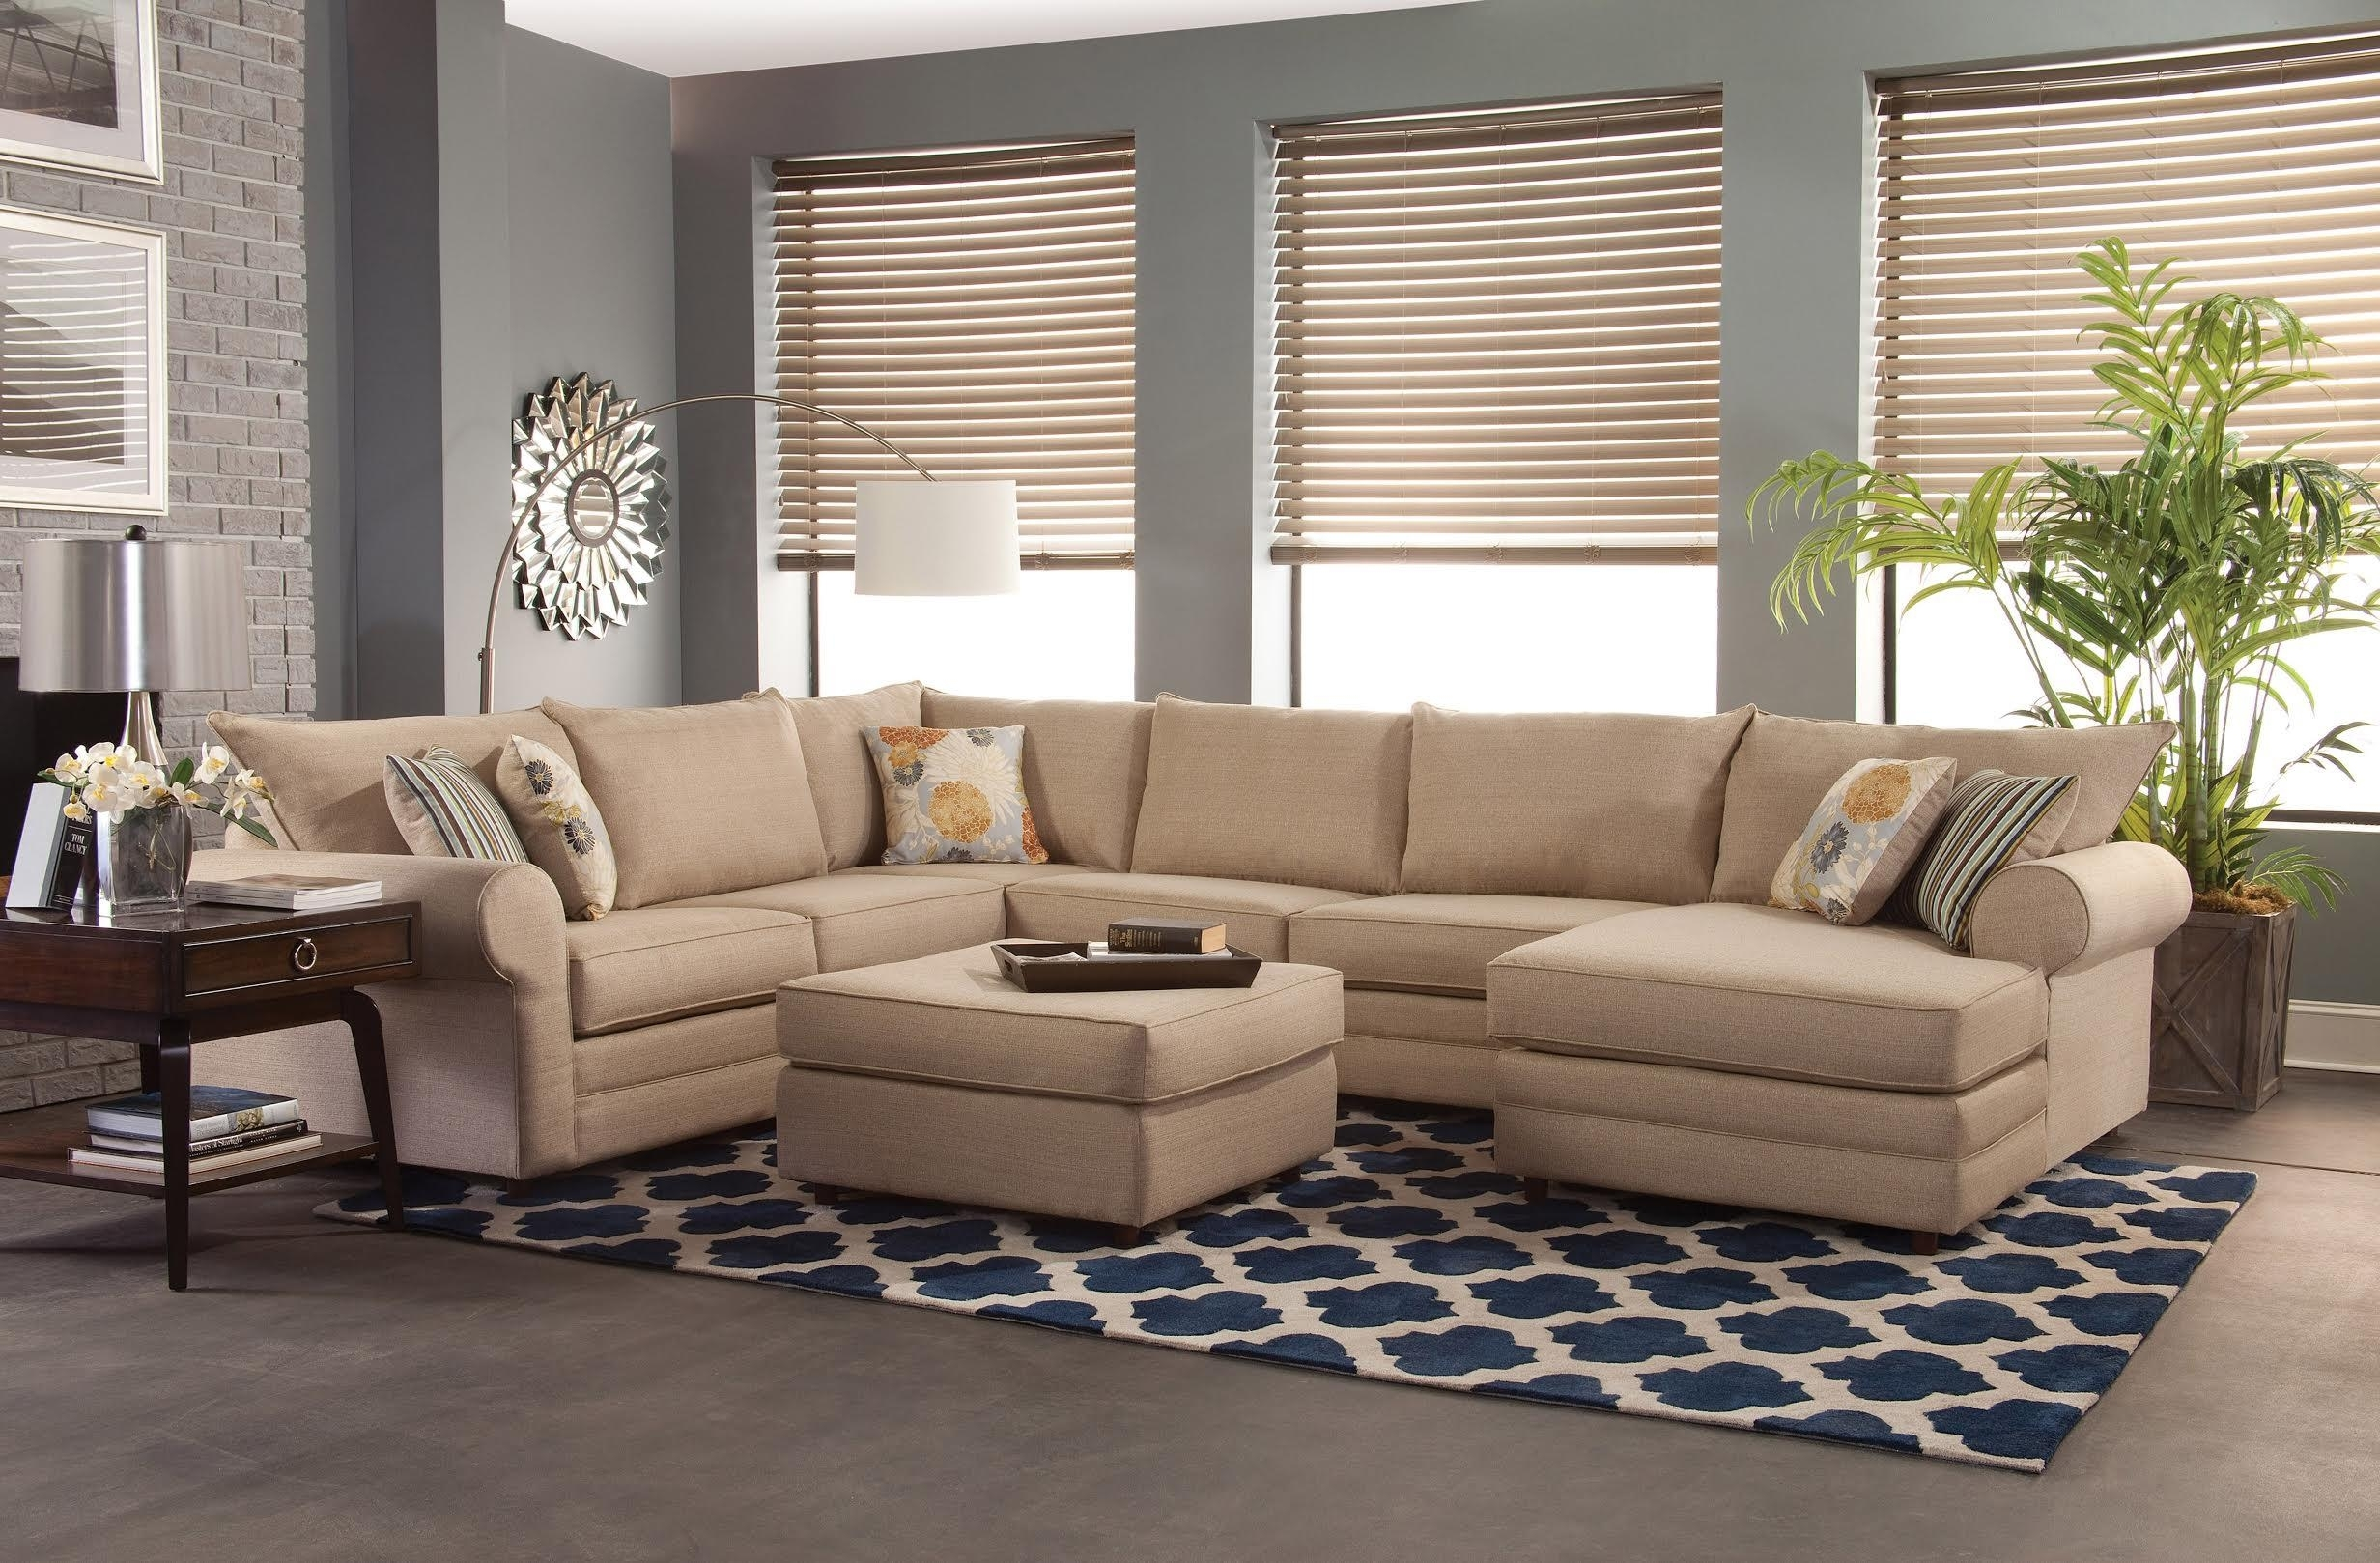 Belfort Essentials Monticello Casual Sectional Sofa | Belfort With Regard To Sectional Sofas (Image 1 of 10)